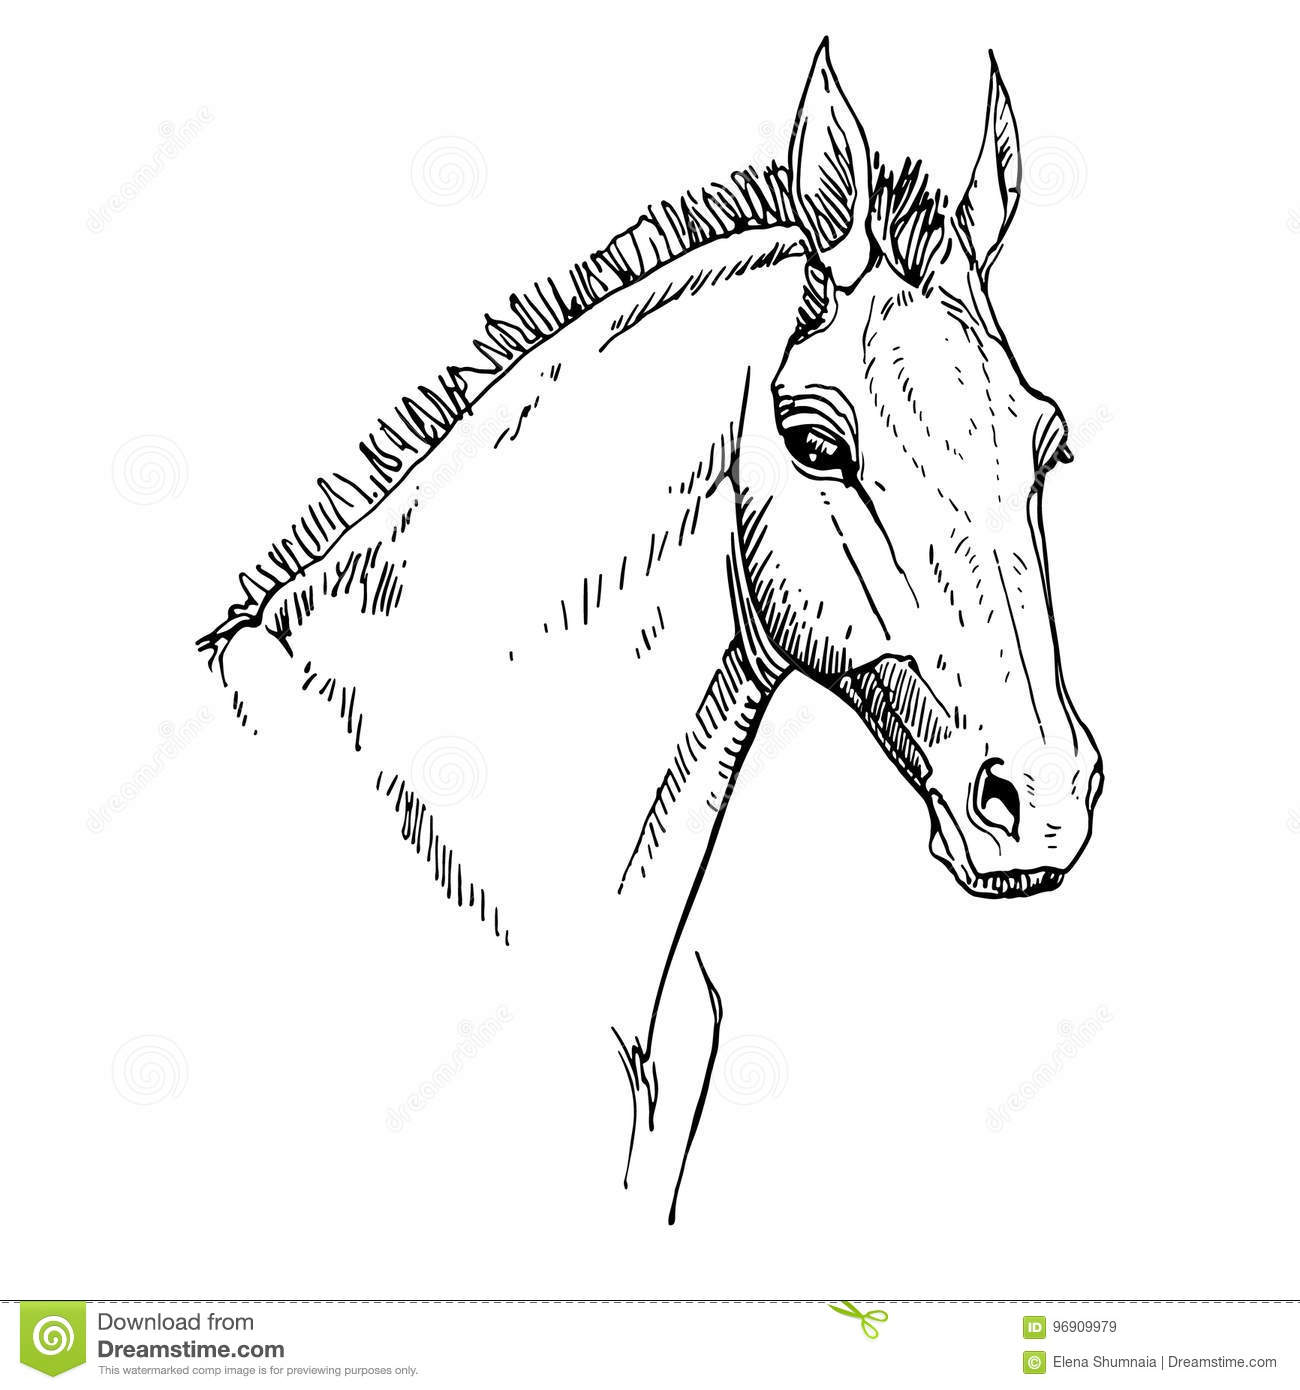 Dessin de t te de cheval illustration de vecteur illustration du type 96909979 - Dessin de tete de cheval ...